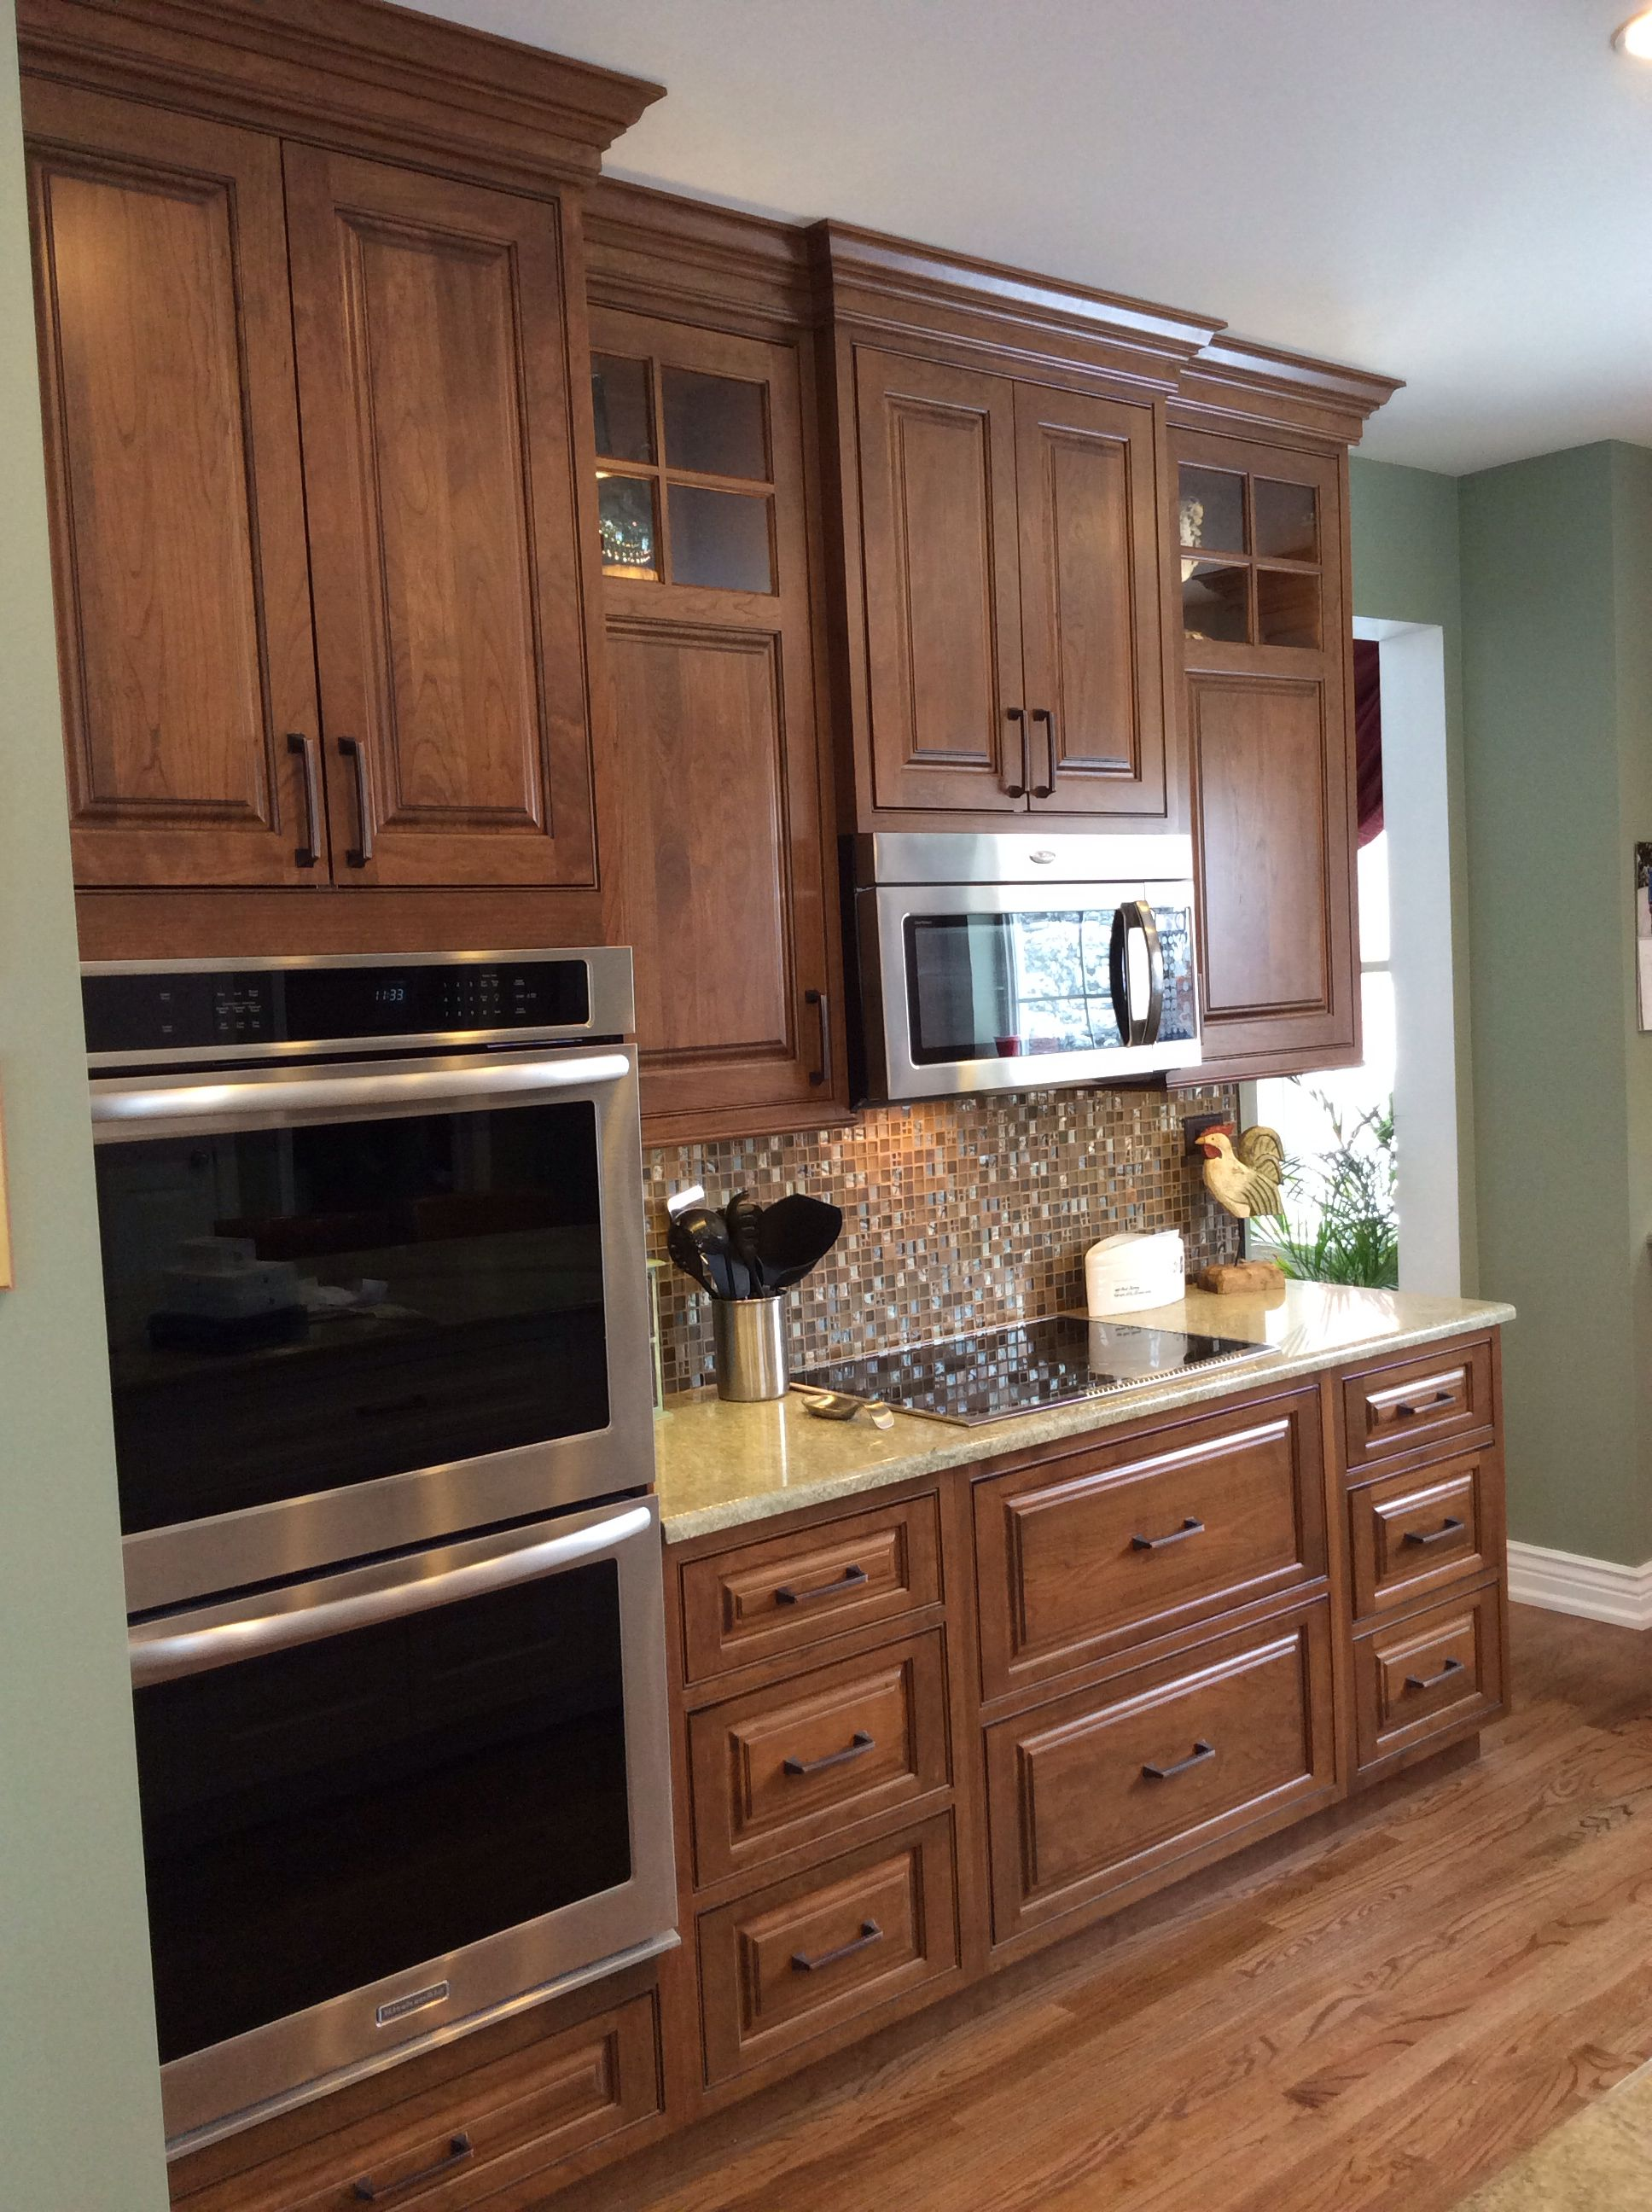 Shiloh beaded inset cabinets shiloh cabinets pinterest for Beaded inset kitchen cabinets